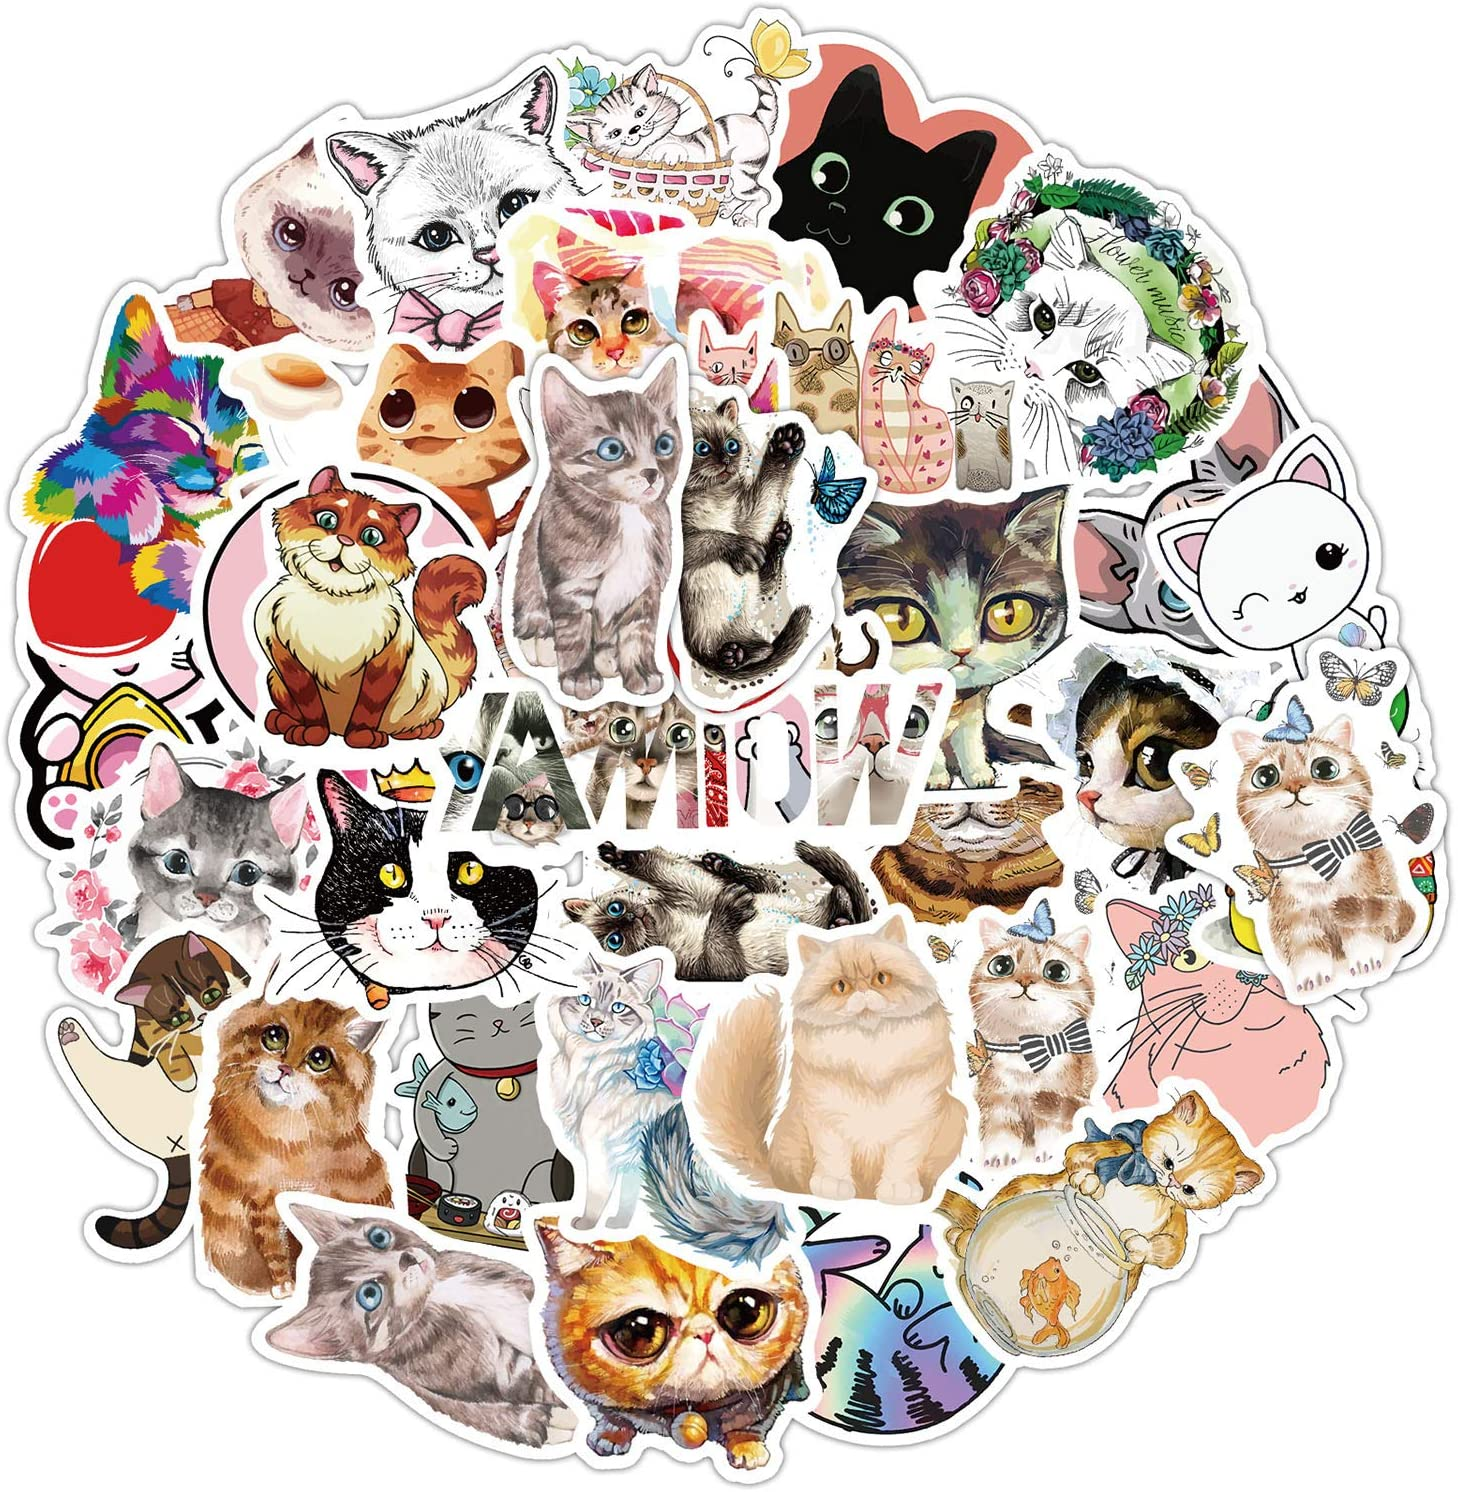 80Pcs Cute Waterproof Cats Vinyl Stickers Funny Animals Sticker for Laptop Guitar Car Suitcase Fridge Water Bottle Bicycle Decals DIY